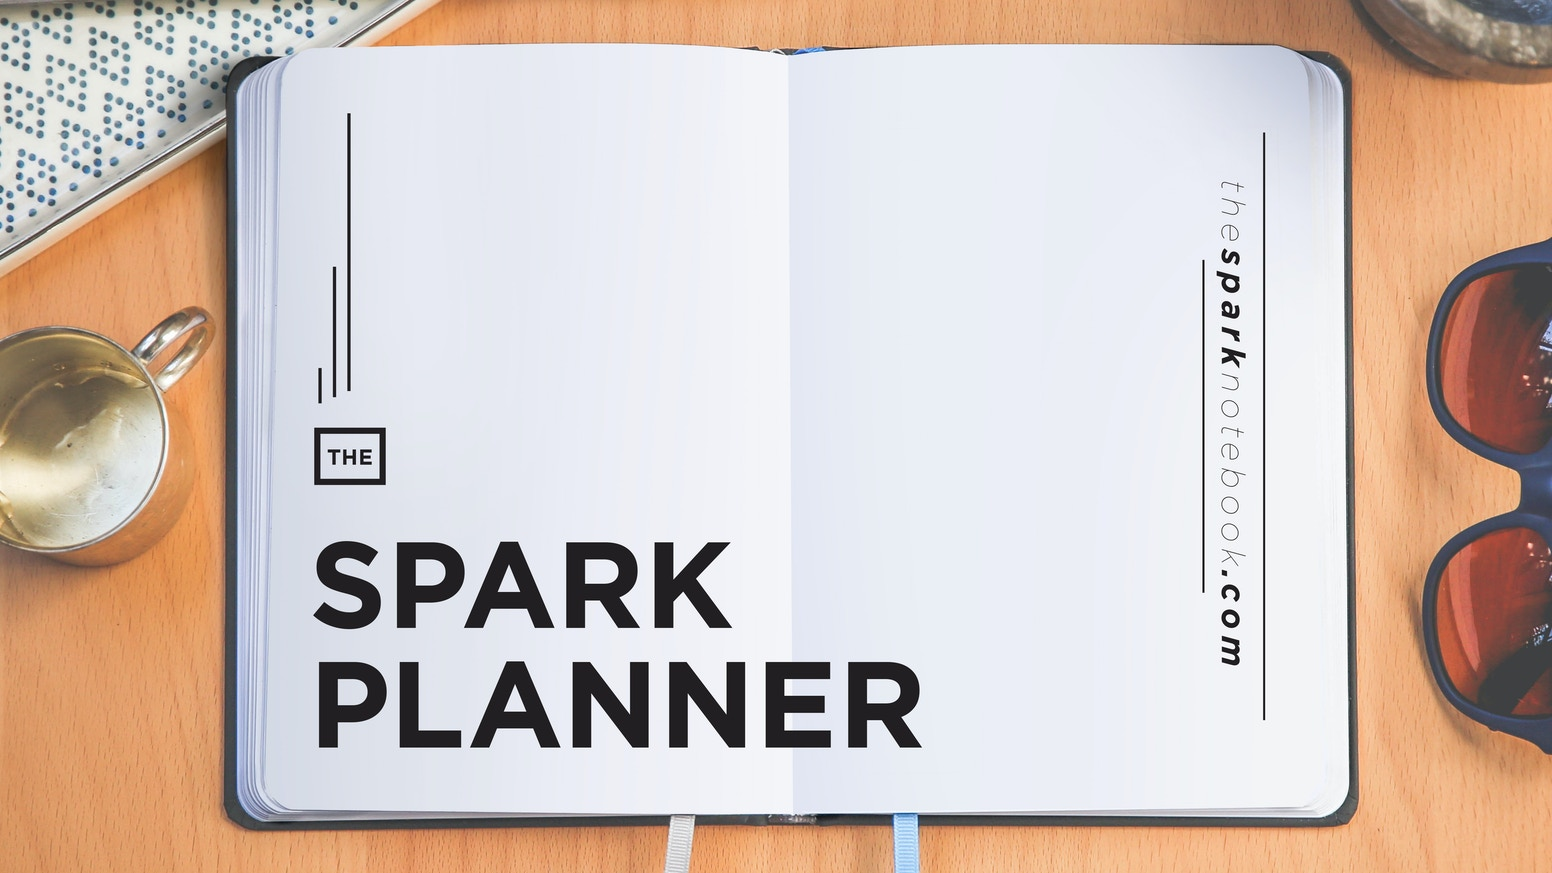 A proven goal-setting, planning, and productivity system for superstars. Make 2016 your best year yet.